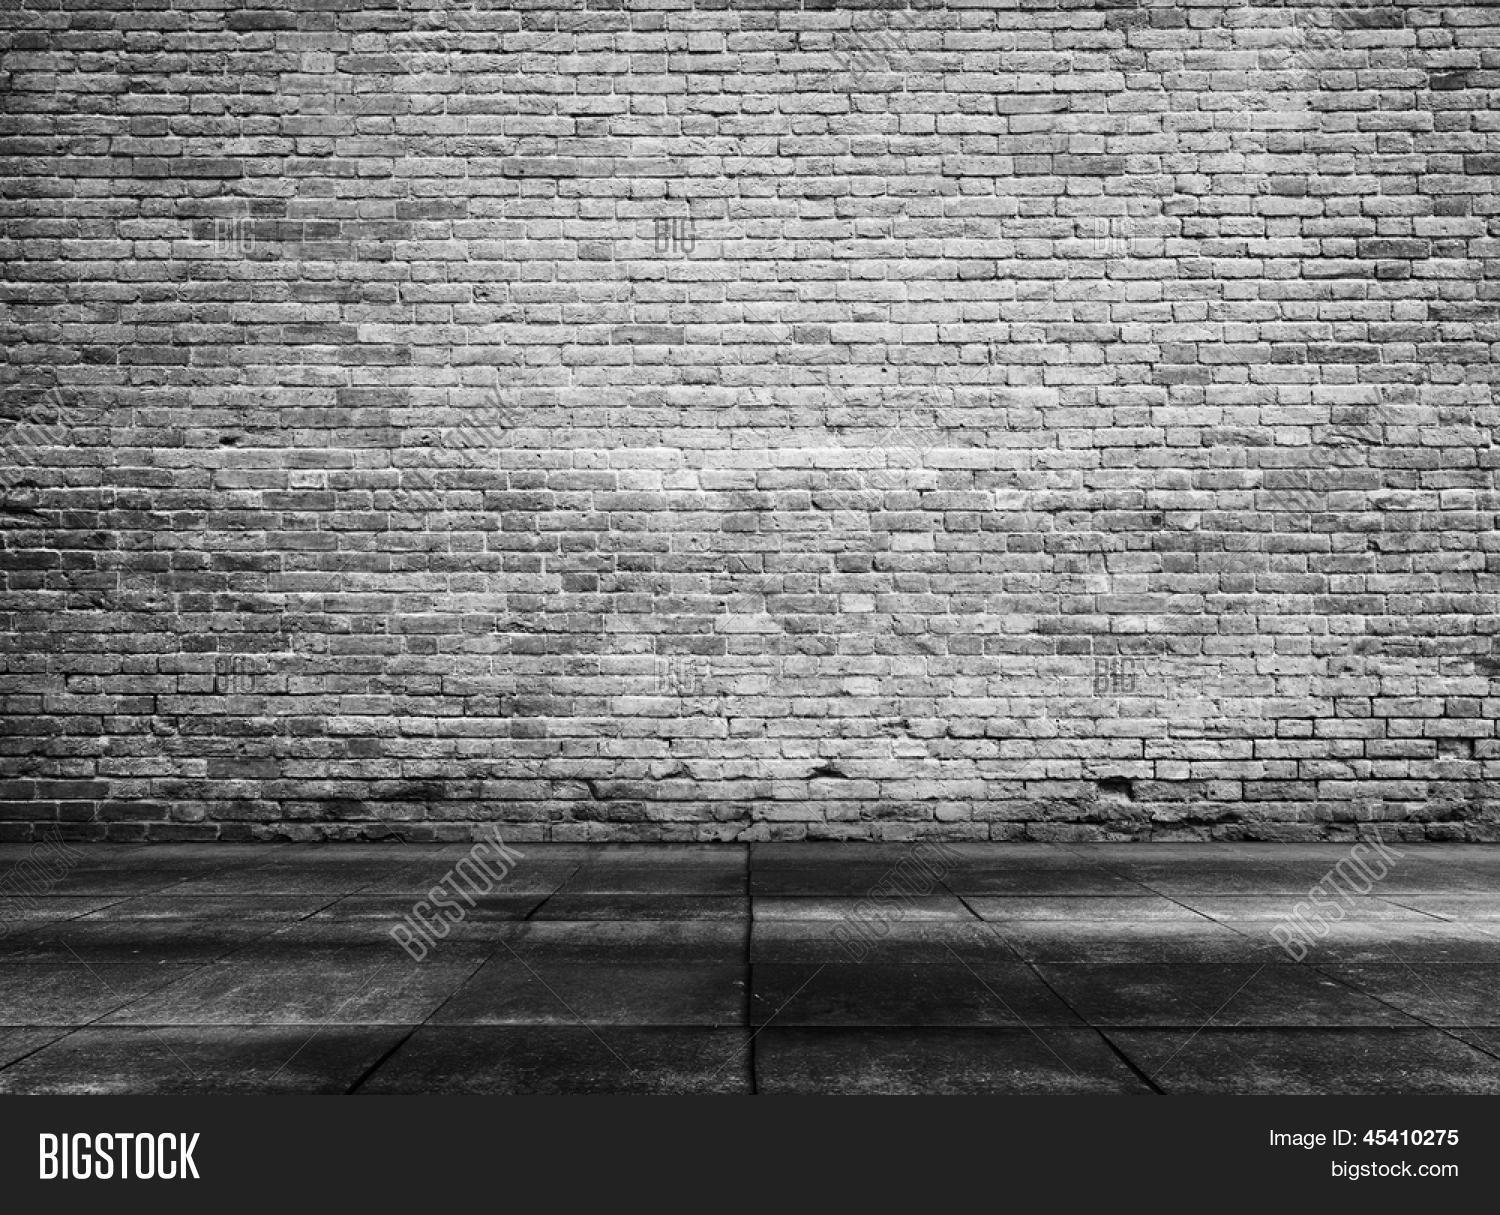 Old Grunge Interior With Brick Wall Black And White